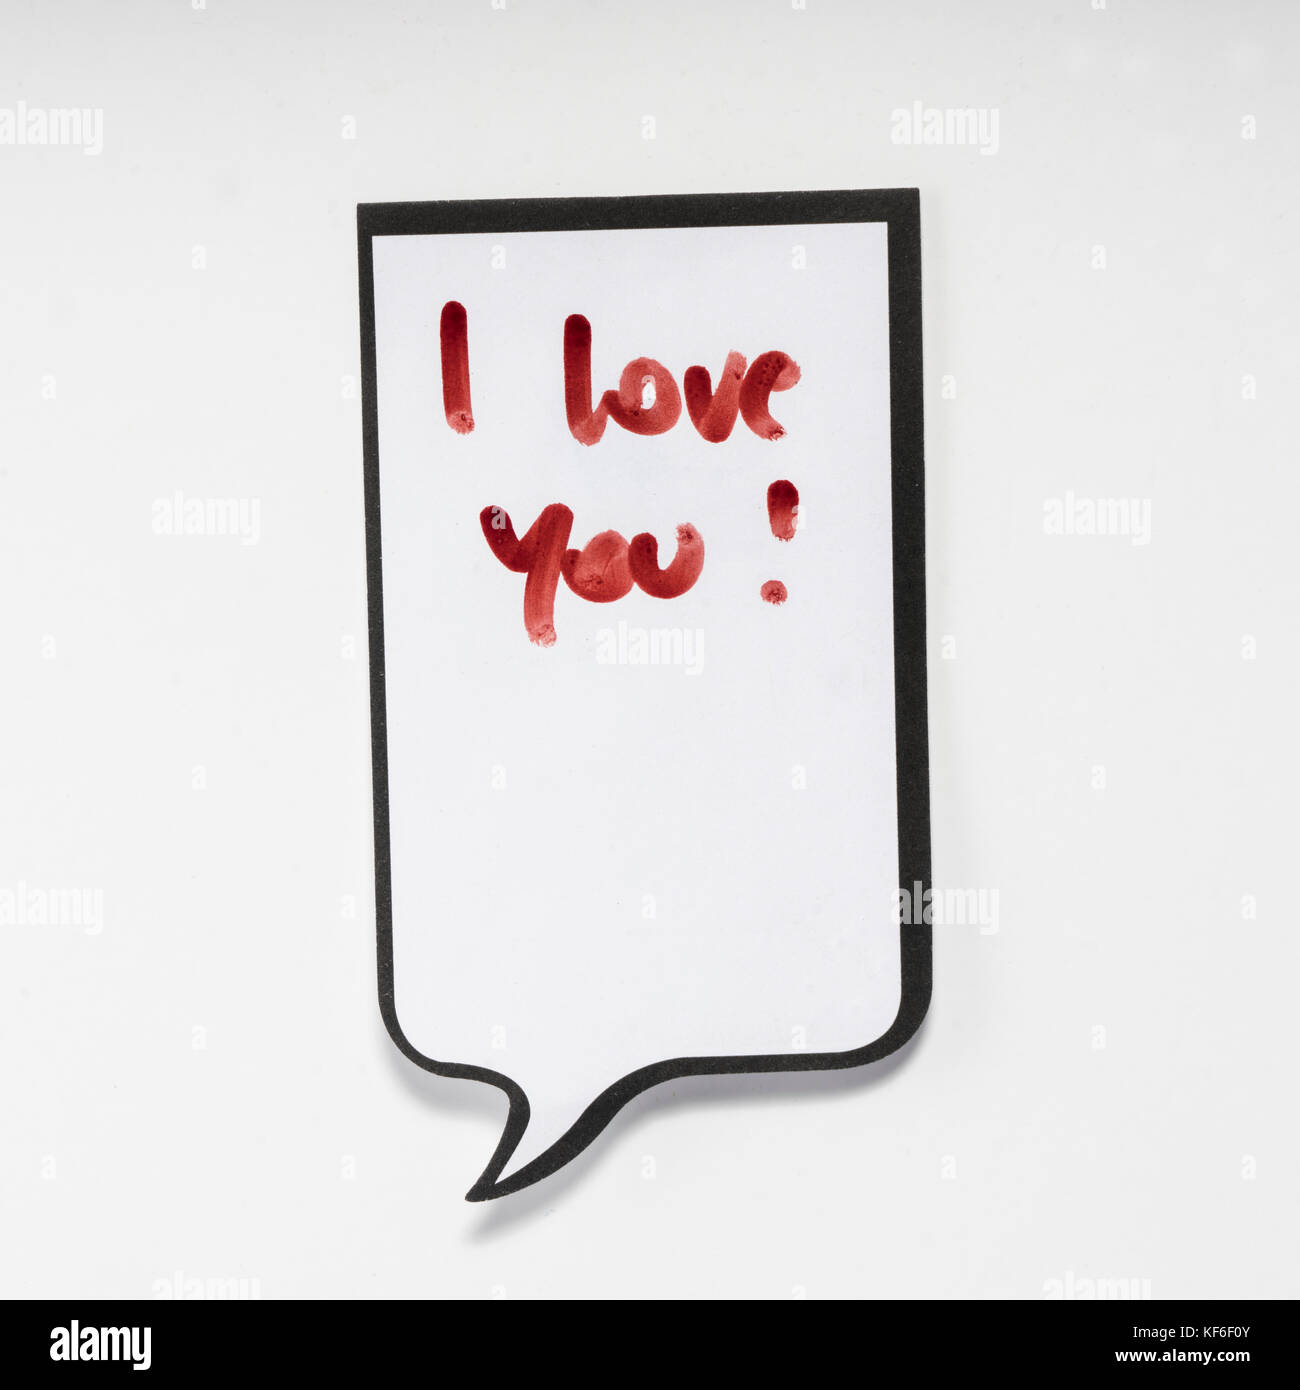 a white memo pad with the shape of a comic with the inscription 'I love you' - Stock Image